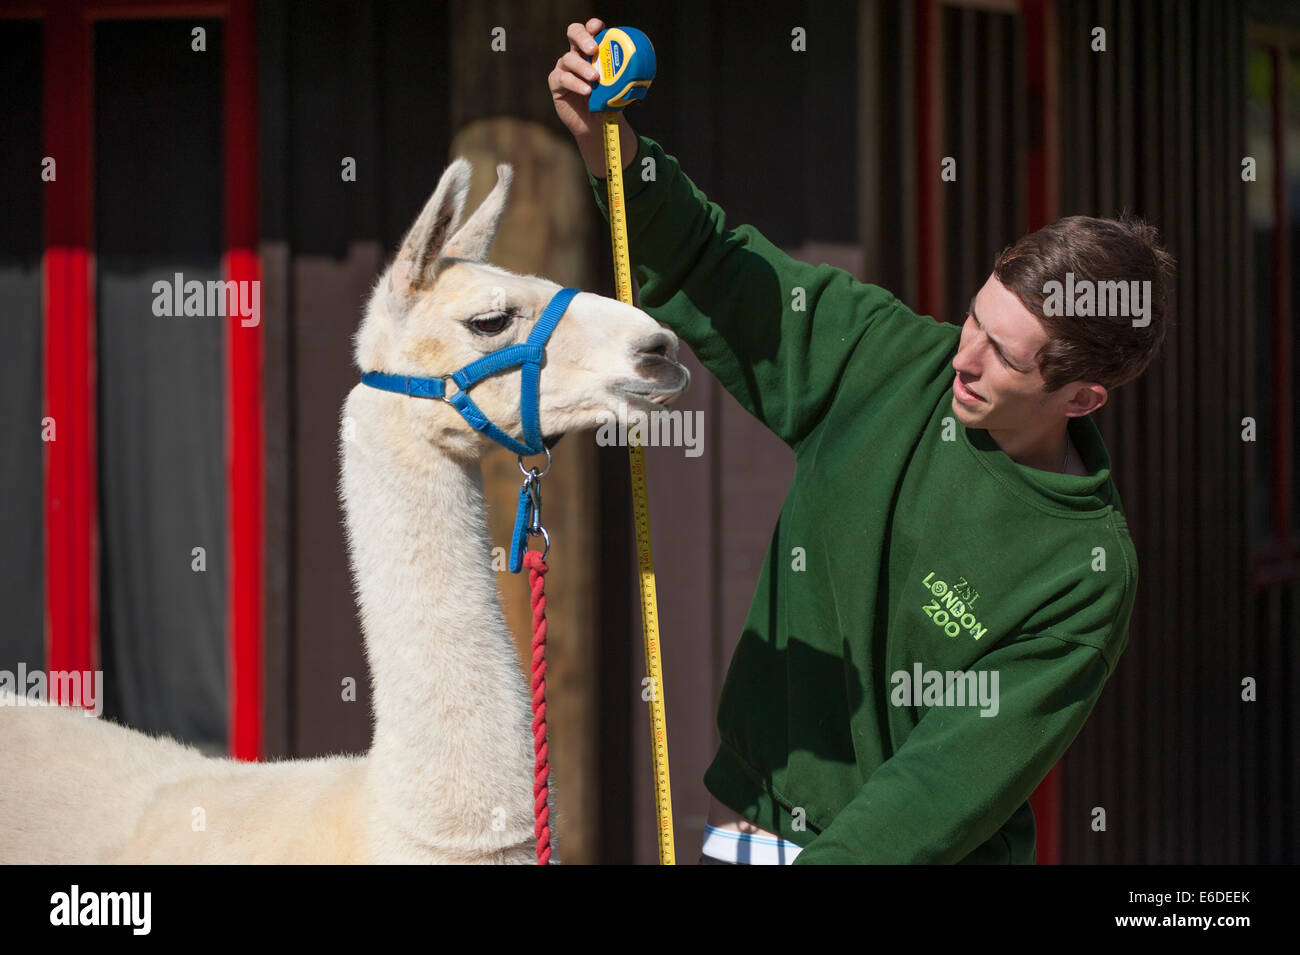 London Zoo, London UK. Thursday 21st August 2014. A Llama at ZSL London Zoo's annual weigh-in 2014. As well as being - Stock Image